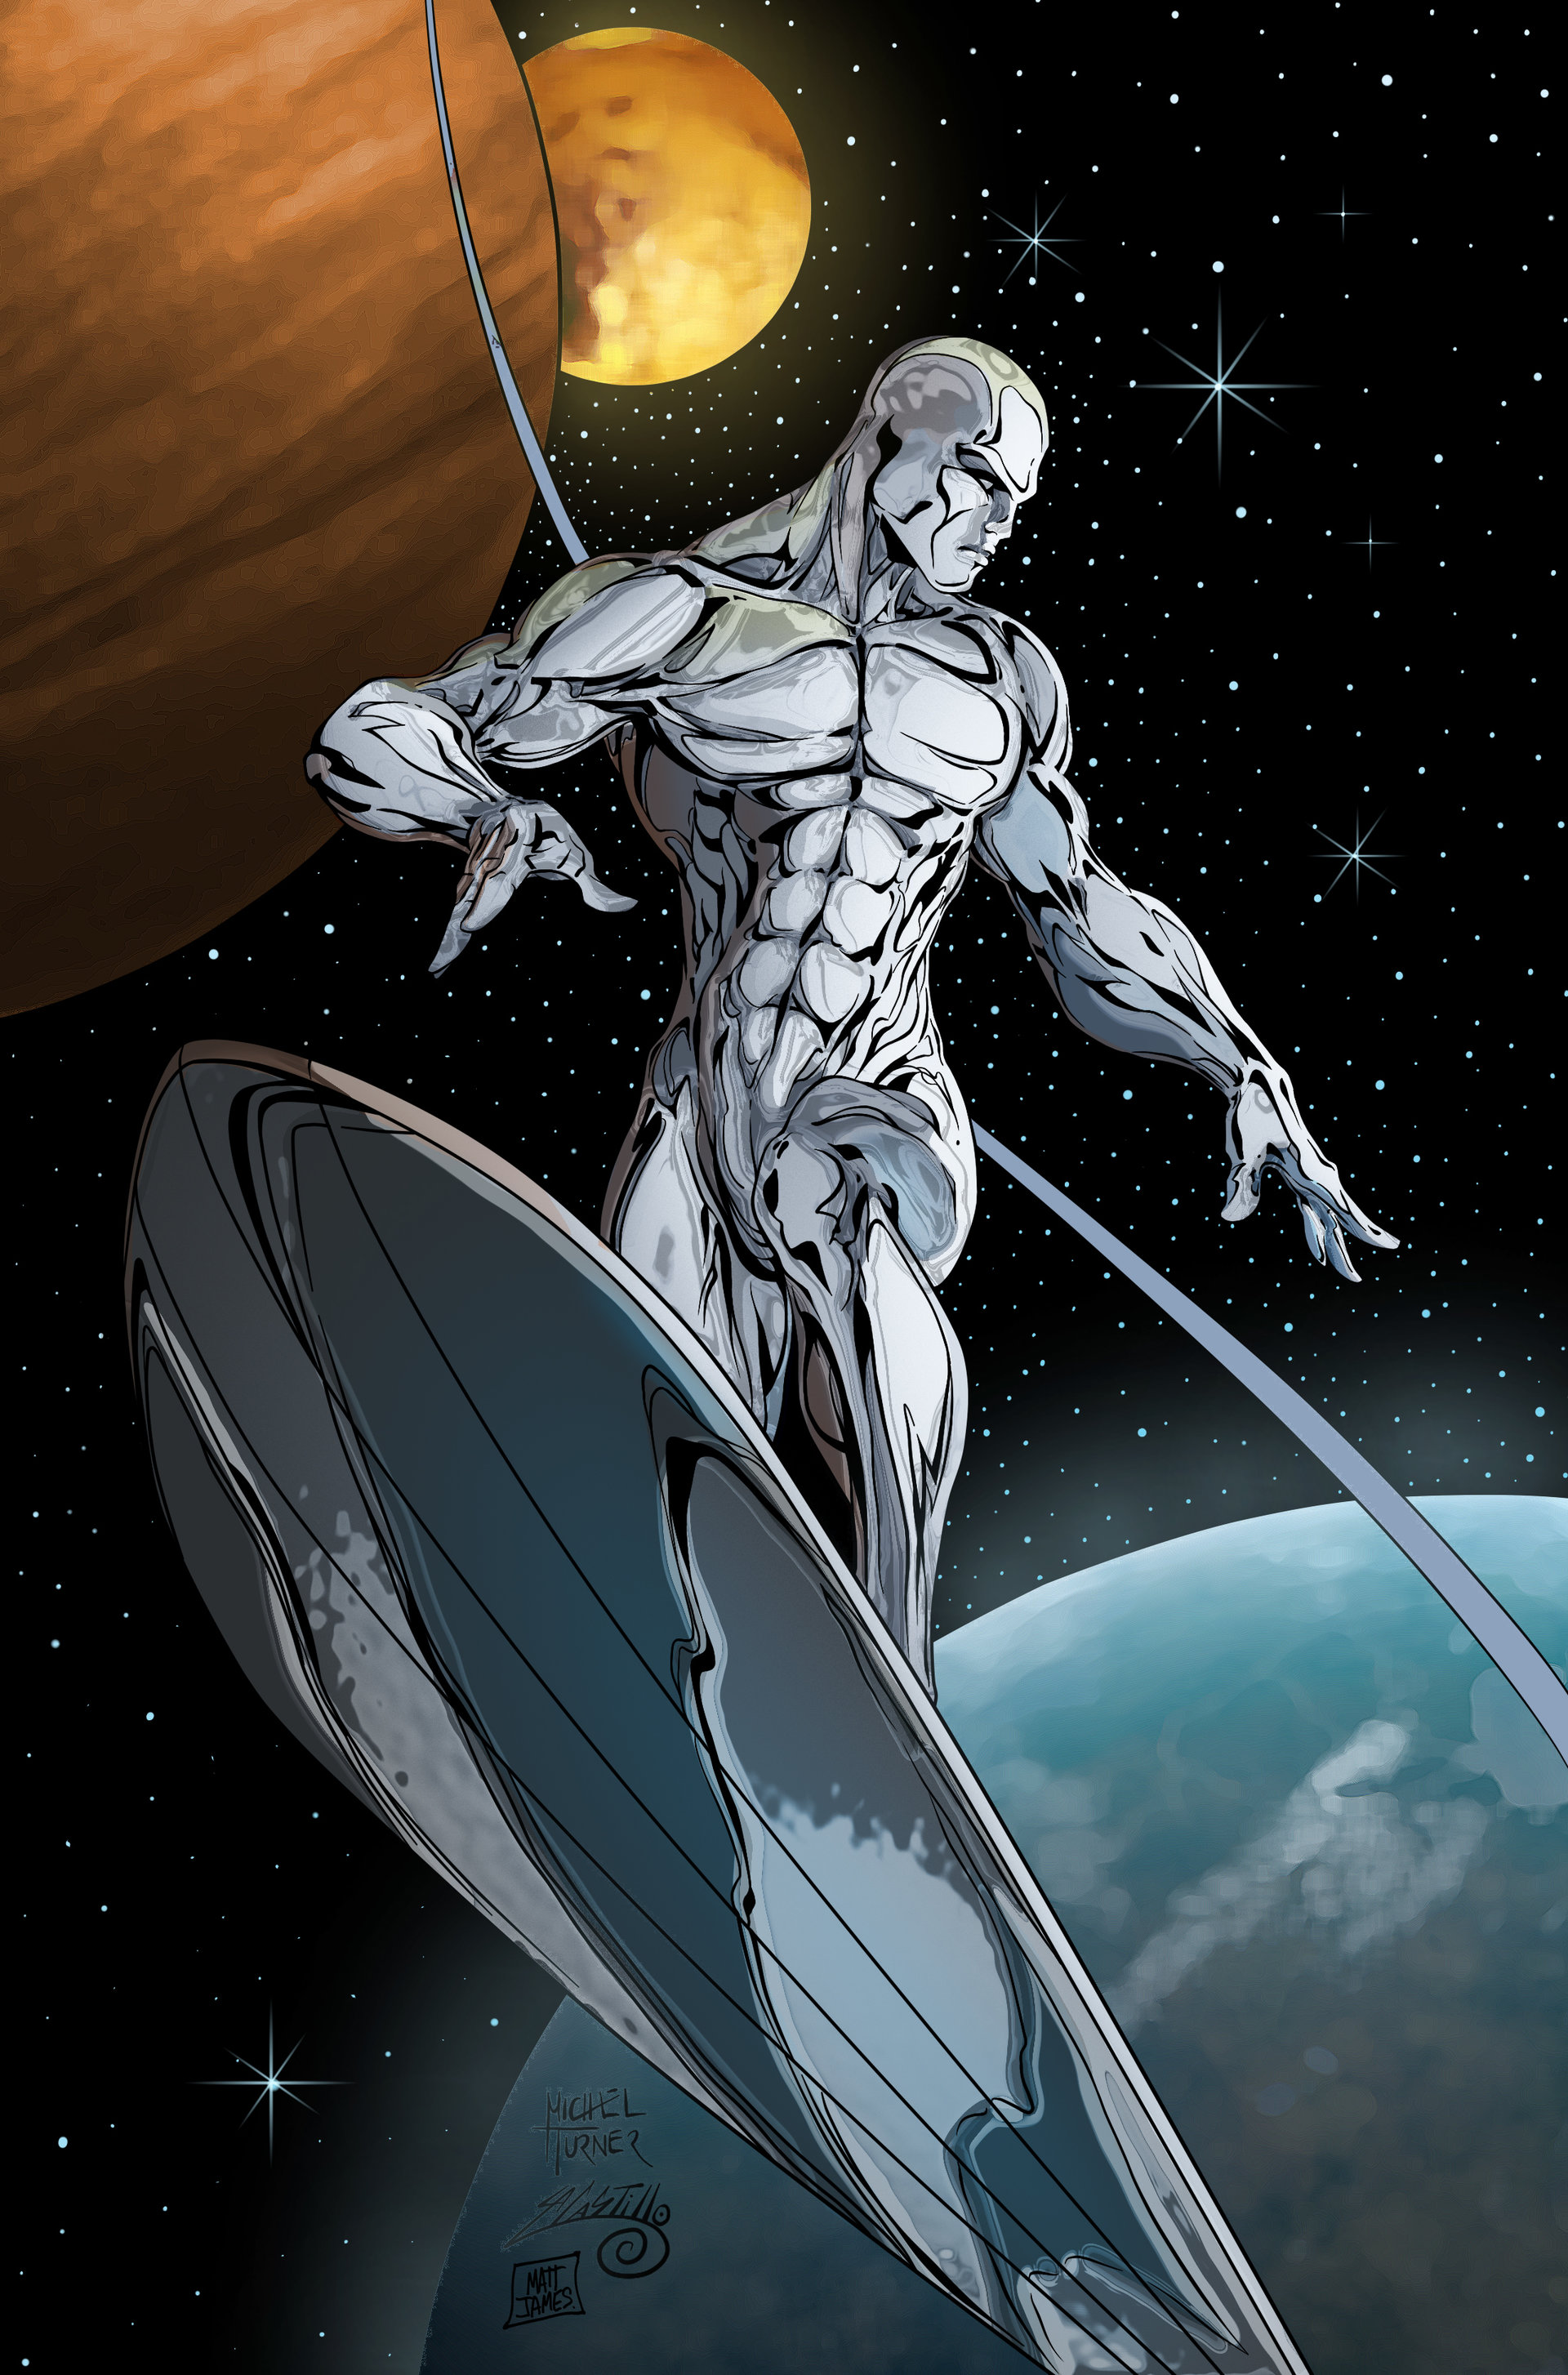 Matt james silver surfer ink by swave18 flat carloscampos by carloscamposart d8wvvun